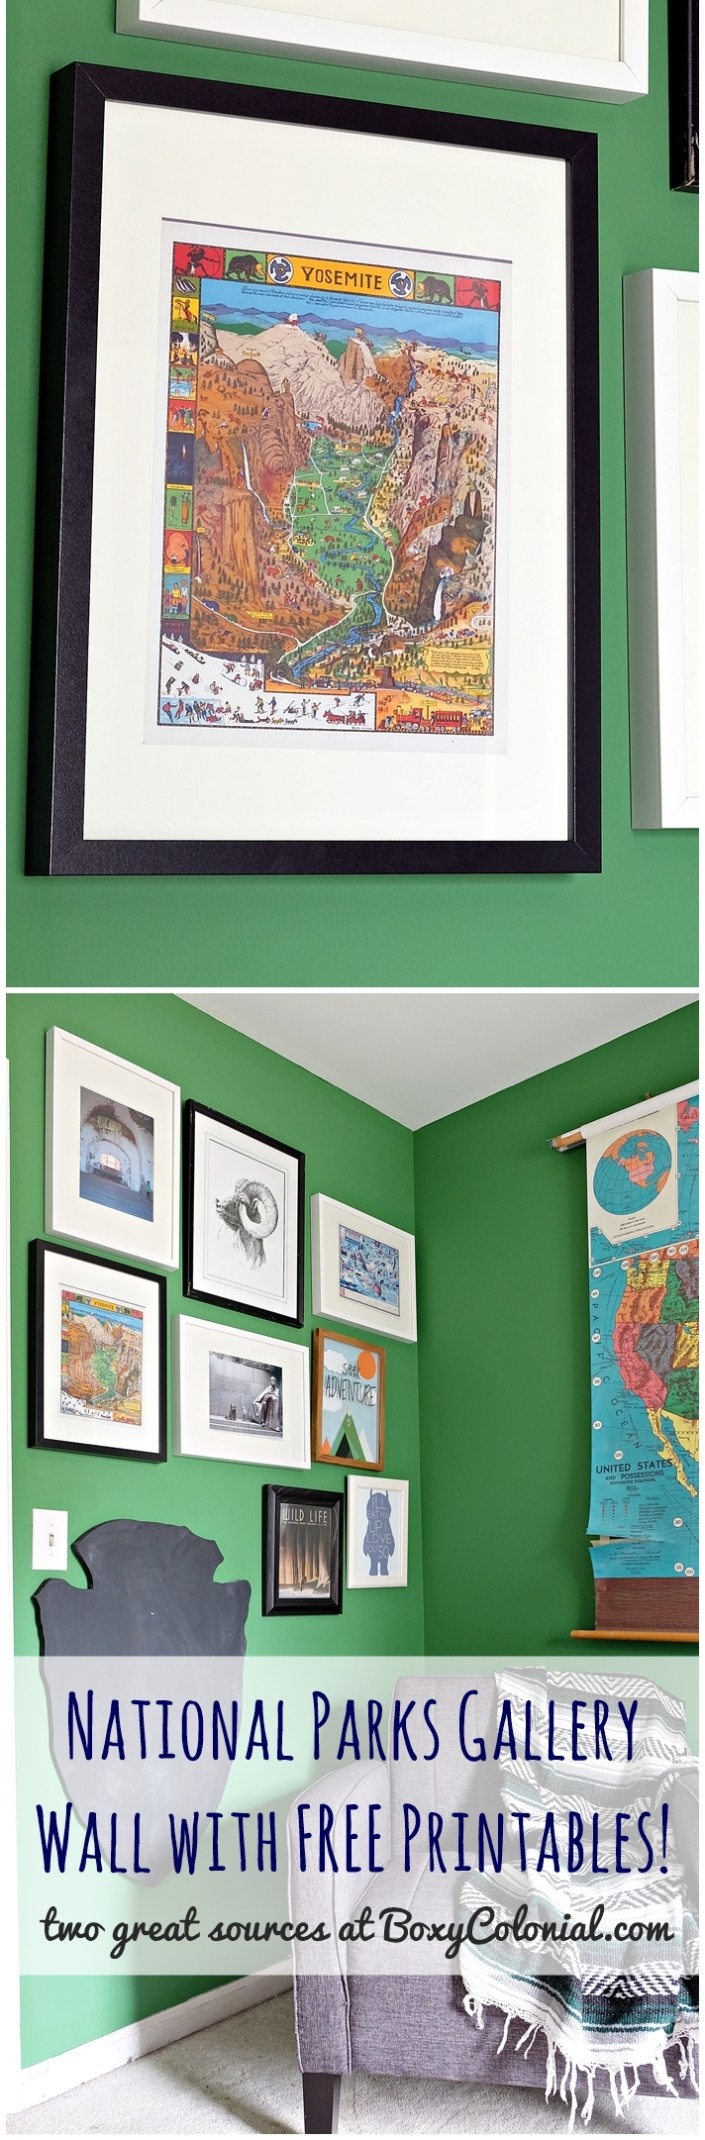 All the details on putting together a National Parks inspired gallery wall for a kids' room, with two great sources for FREE printable vintage maps and posters